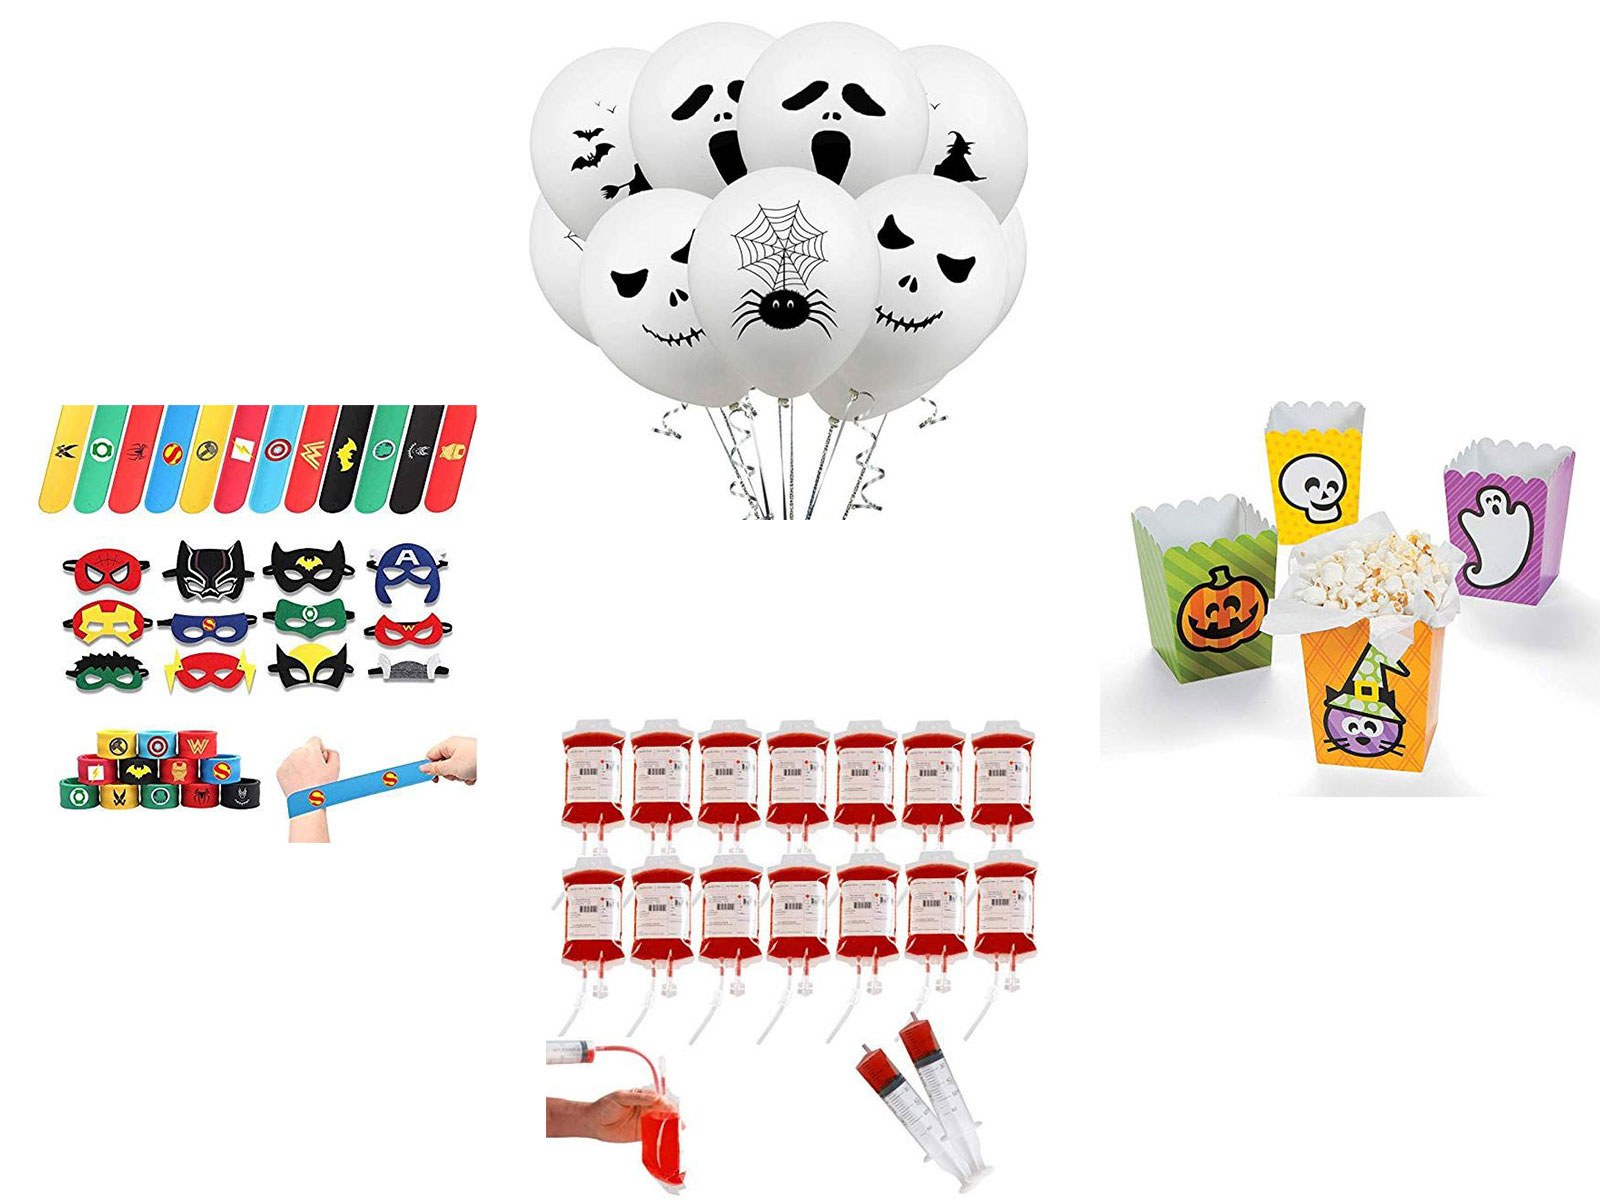 15-Halloween-Themed-Party-Supplies-Gift-Ideas-For-Kids-Adults-2019-F